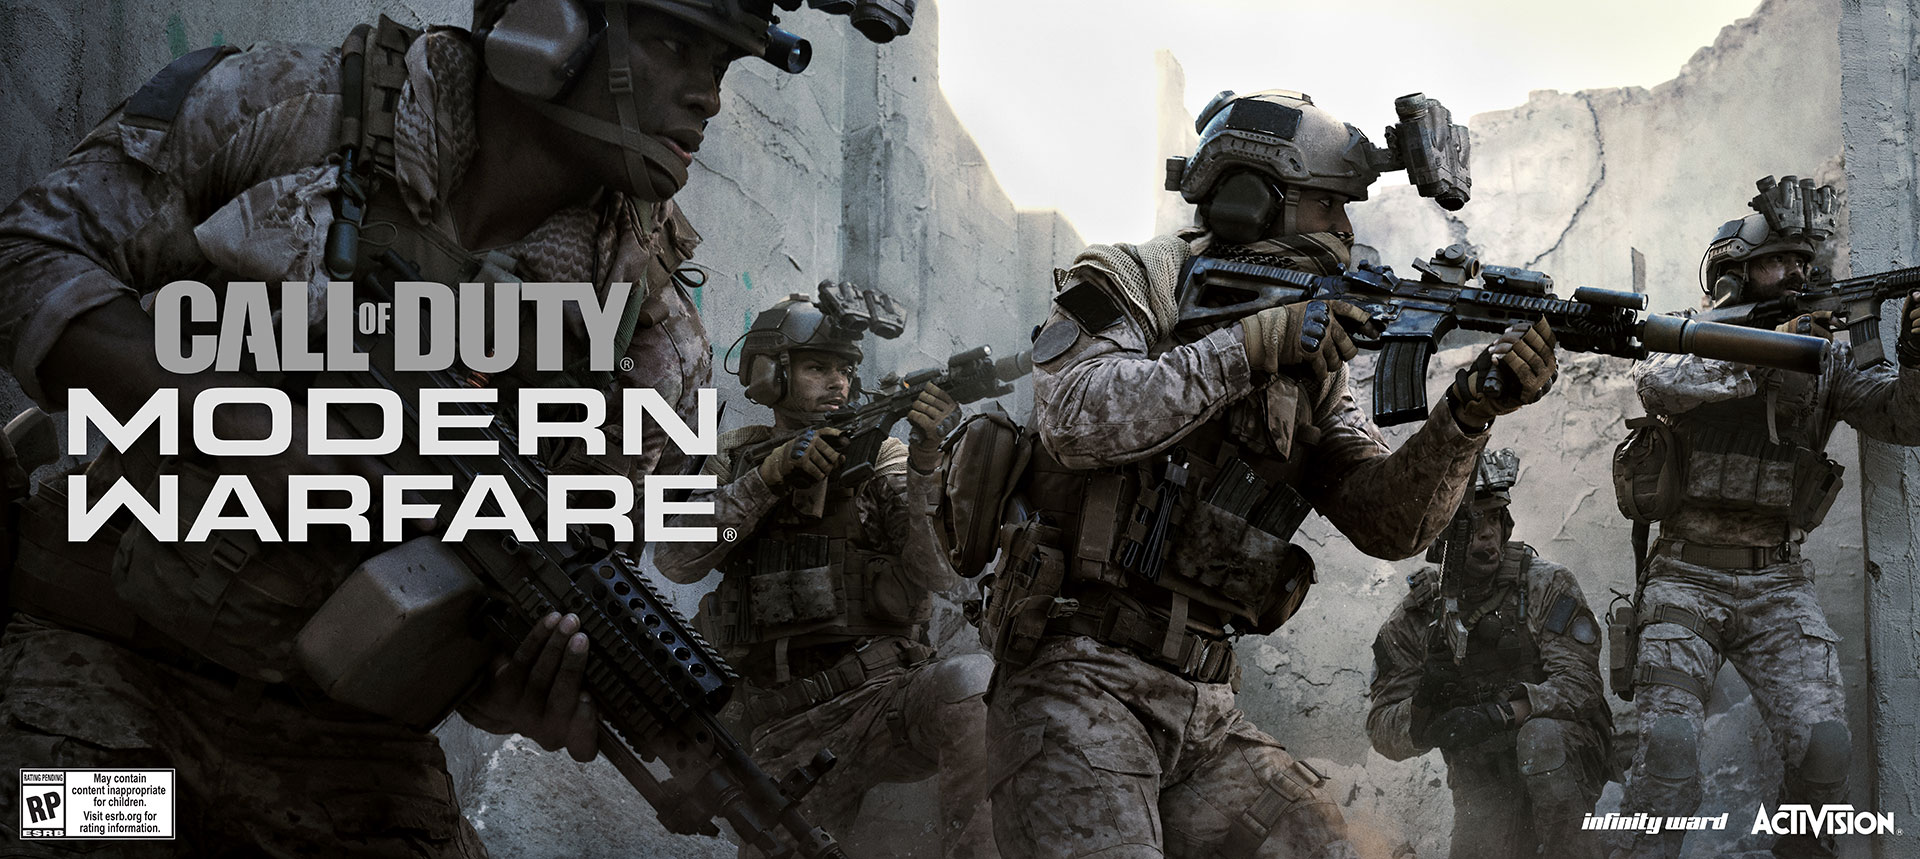 Announcement: Call of Duty®: Modern Warfare® Editions Now ...